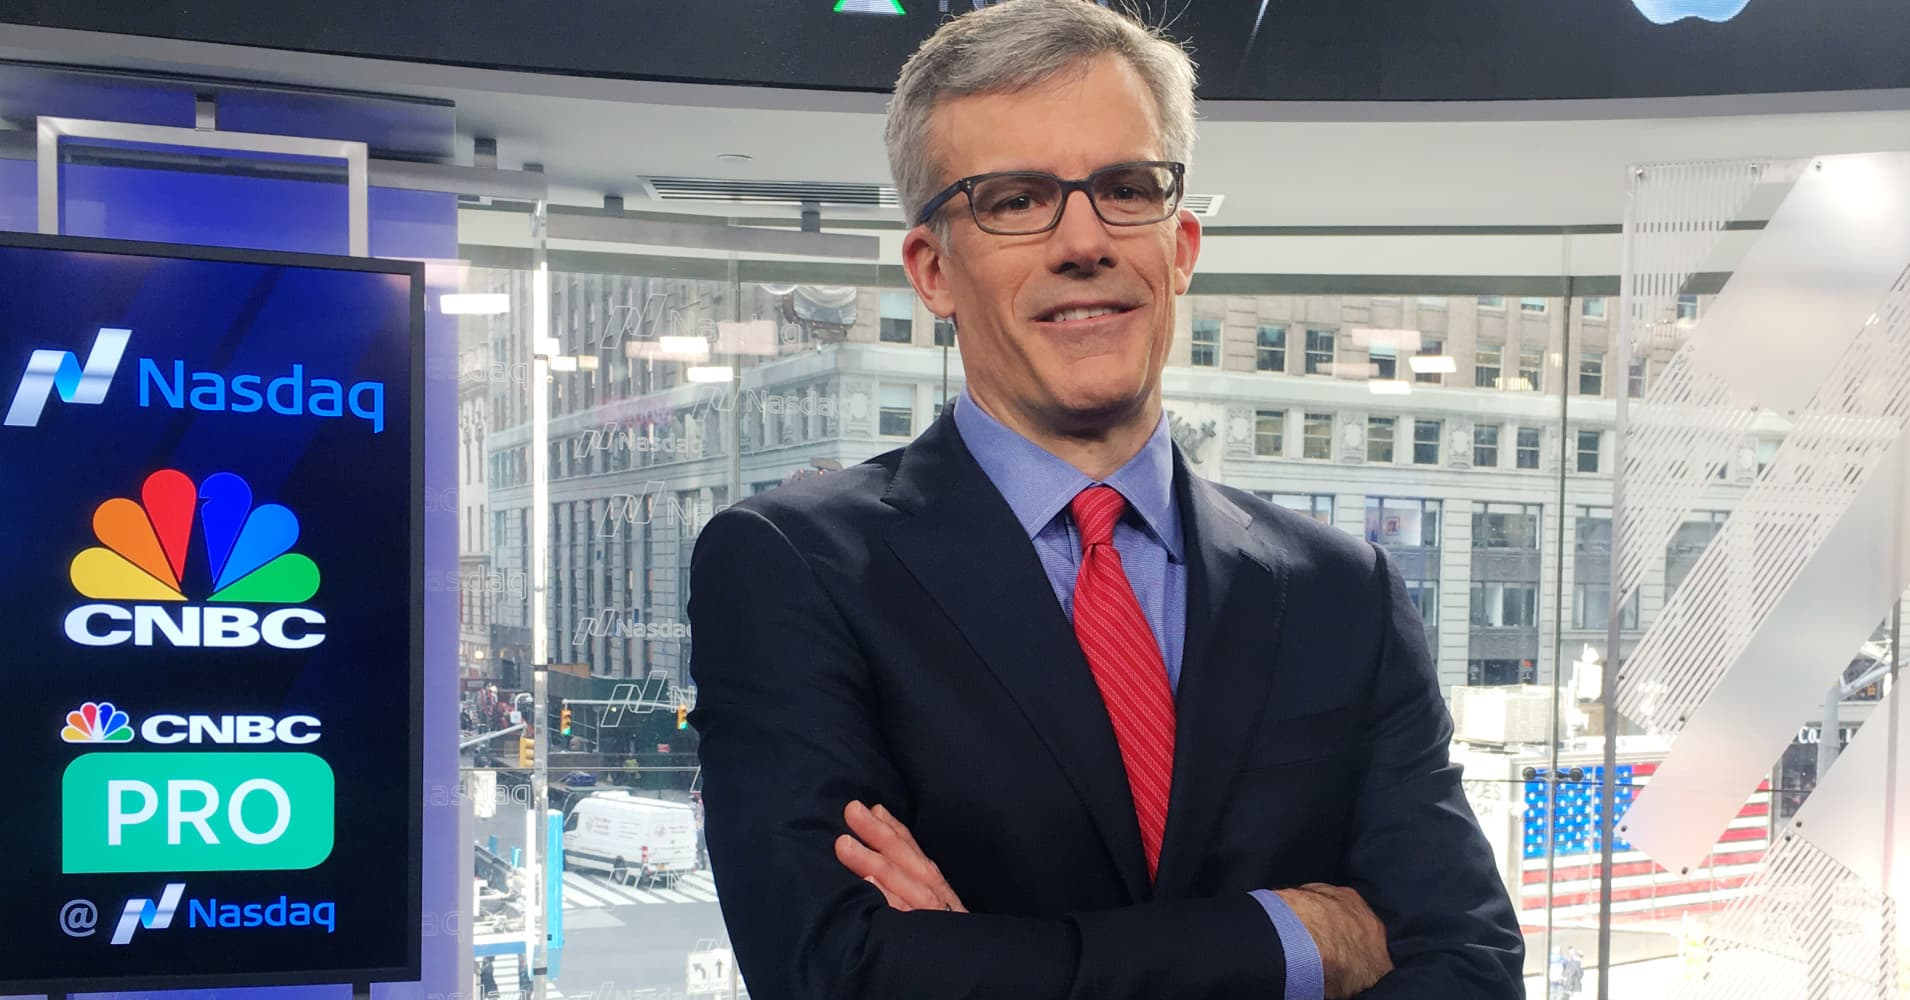 Vanguard's CIO Tim Buckley on why active investing is a losing game